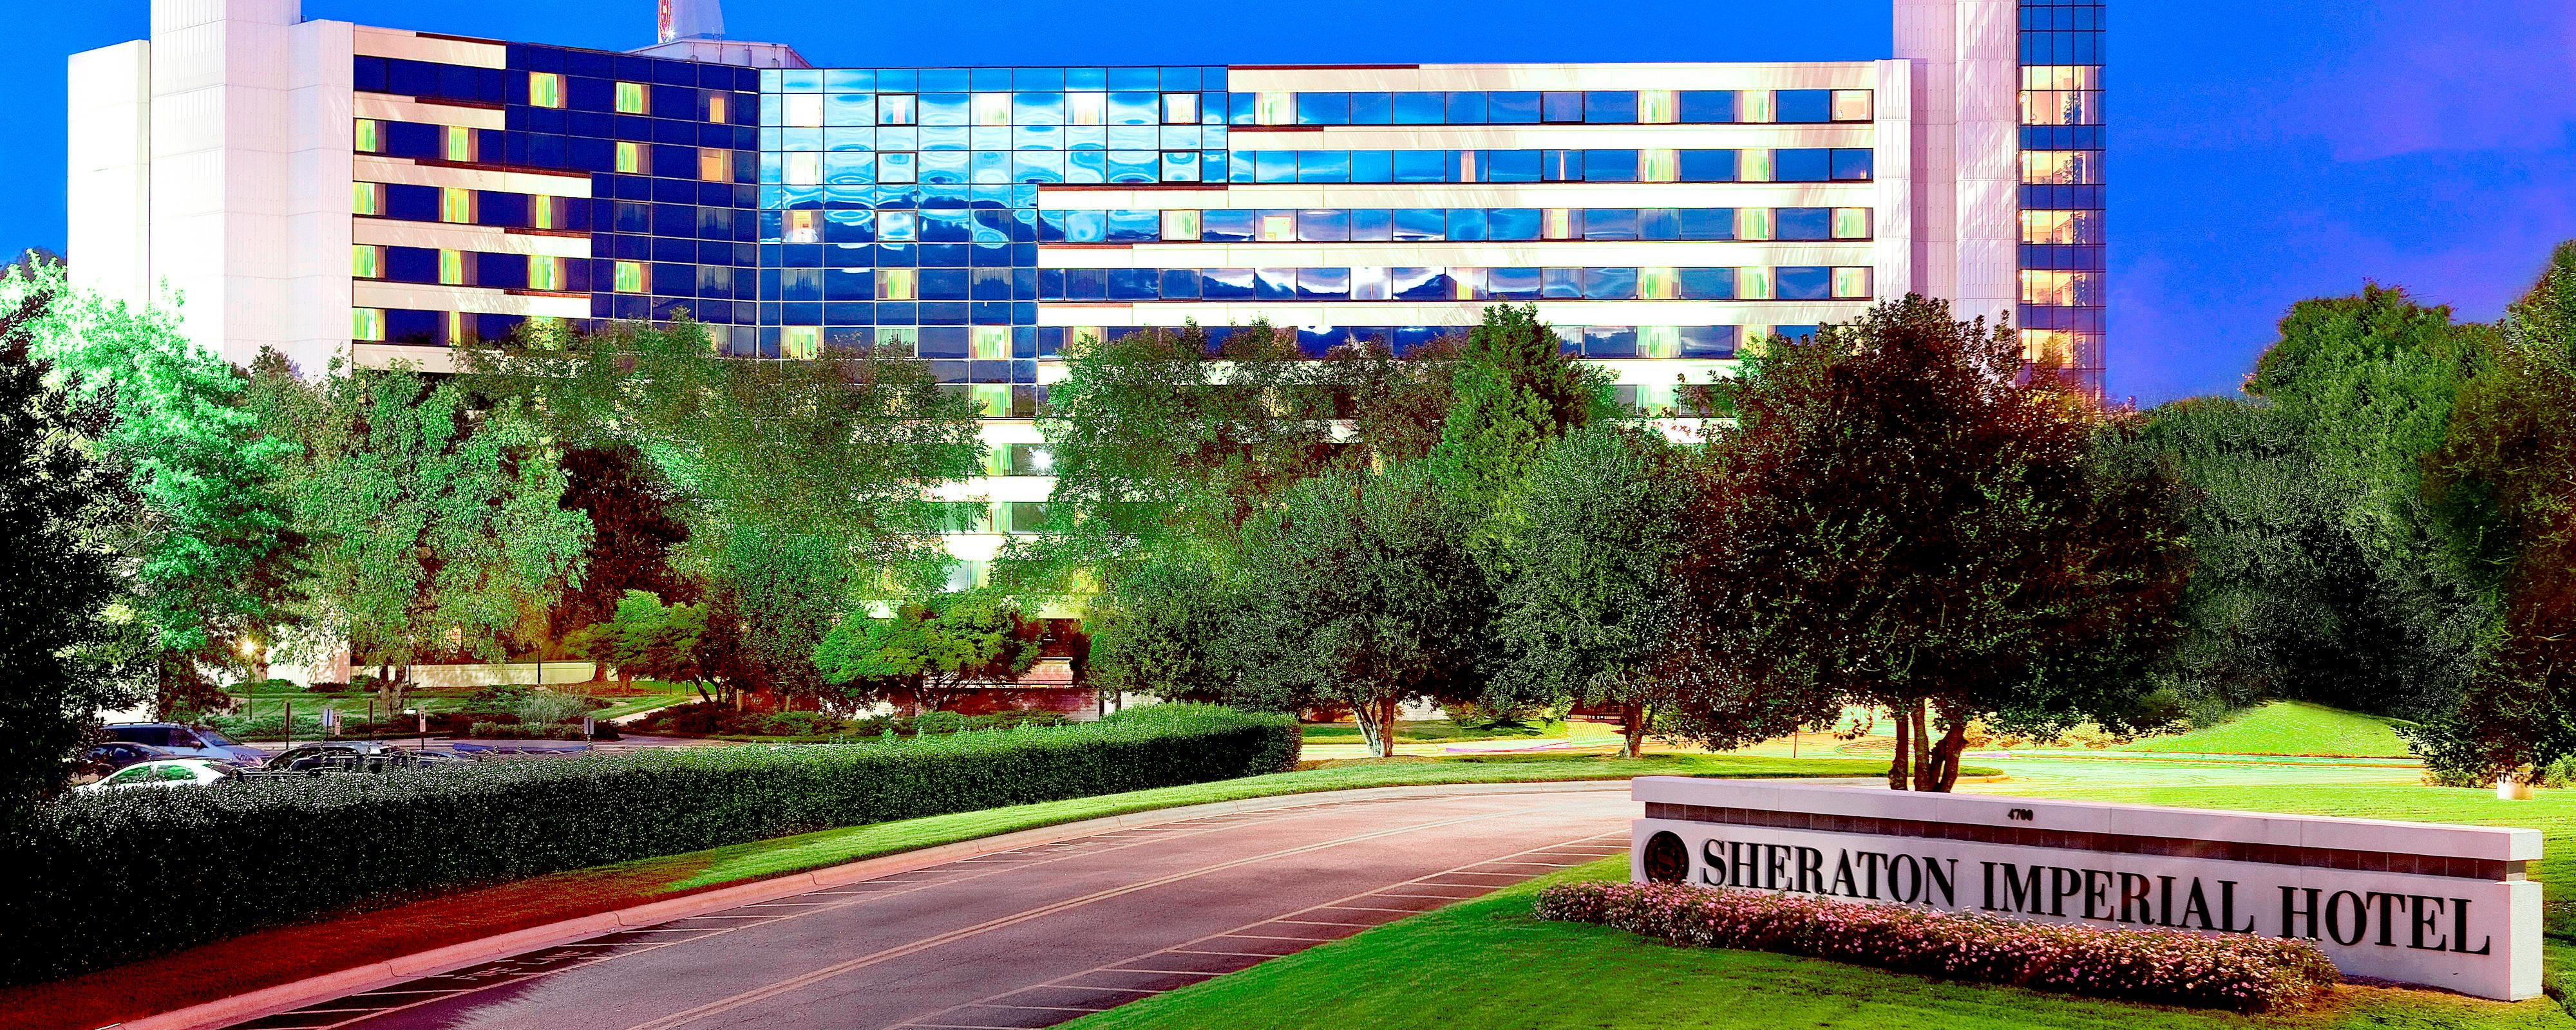 Sheraton Imperial Hotel Raleigh Durham Airport At Research Triangle